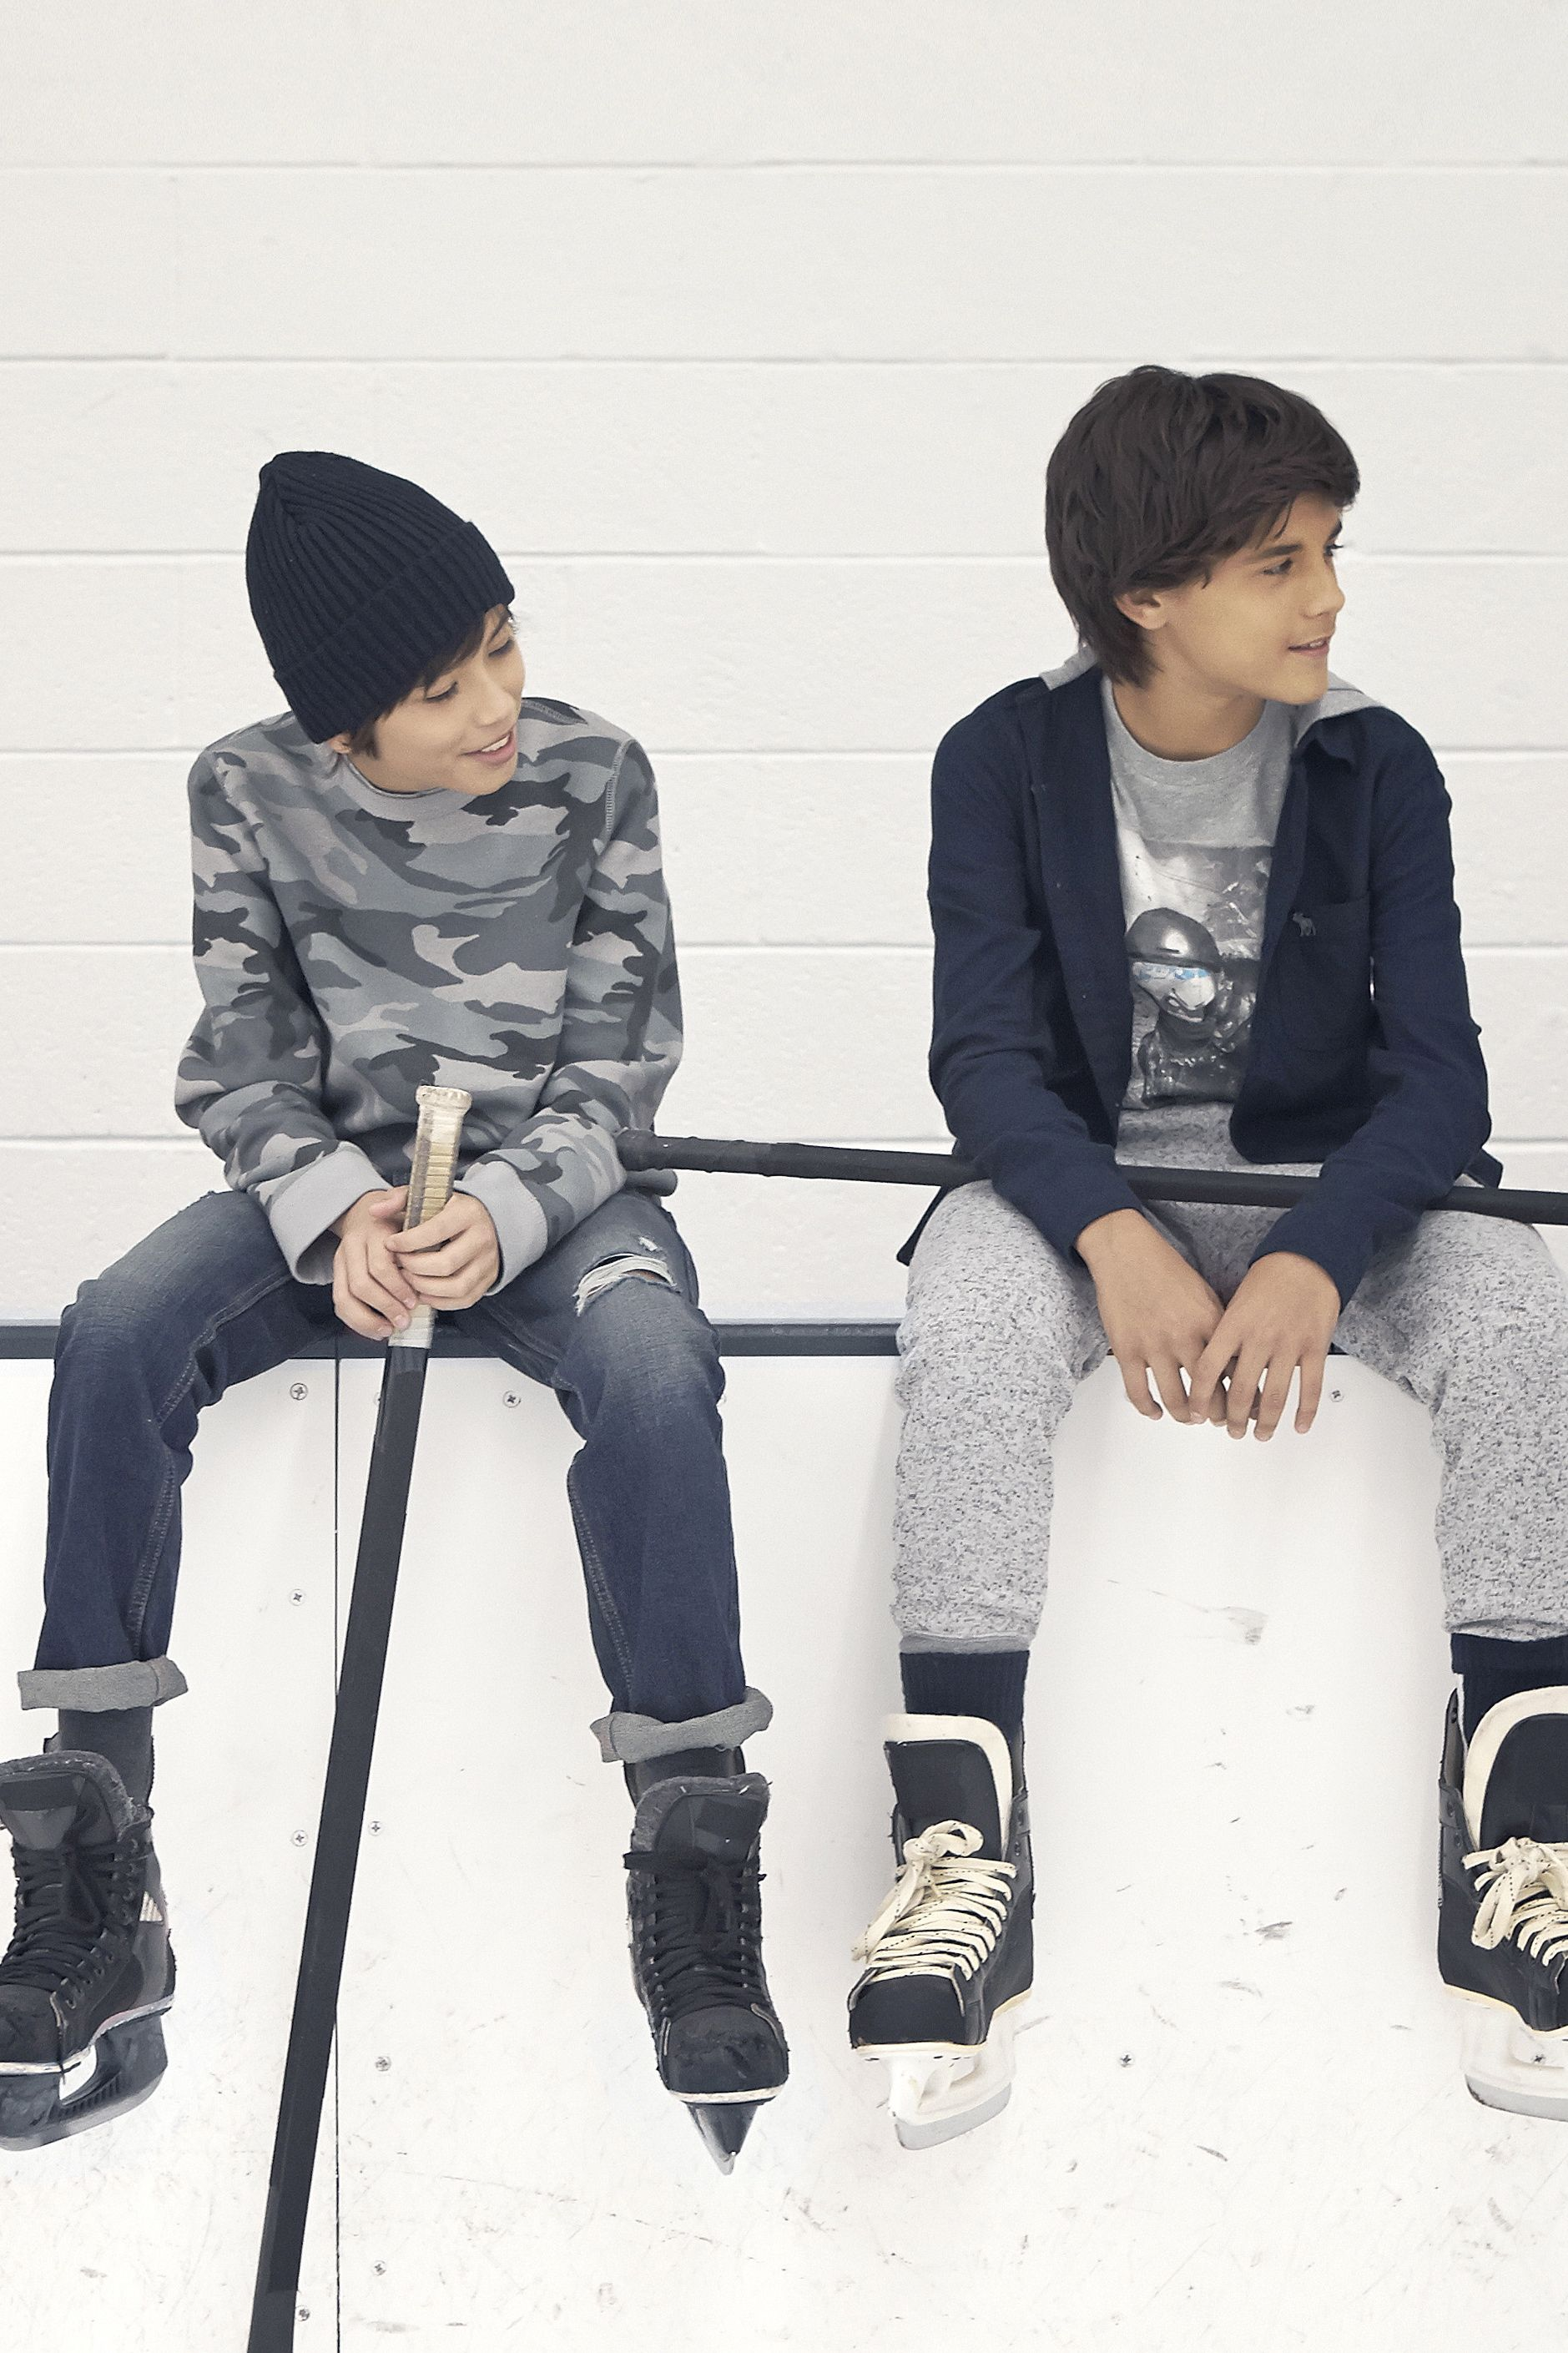 ab13acef23 winter games lookbook | abercrombiekids.com | hangin' with the boys ...